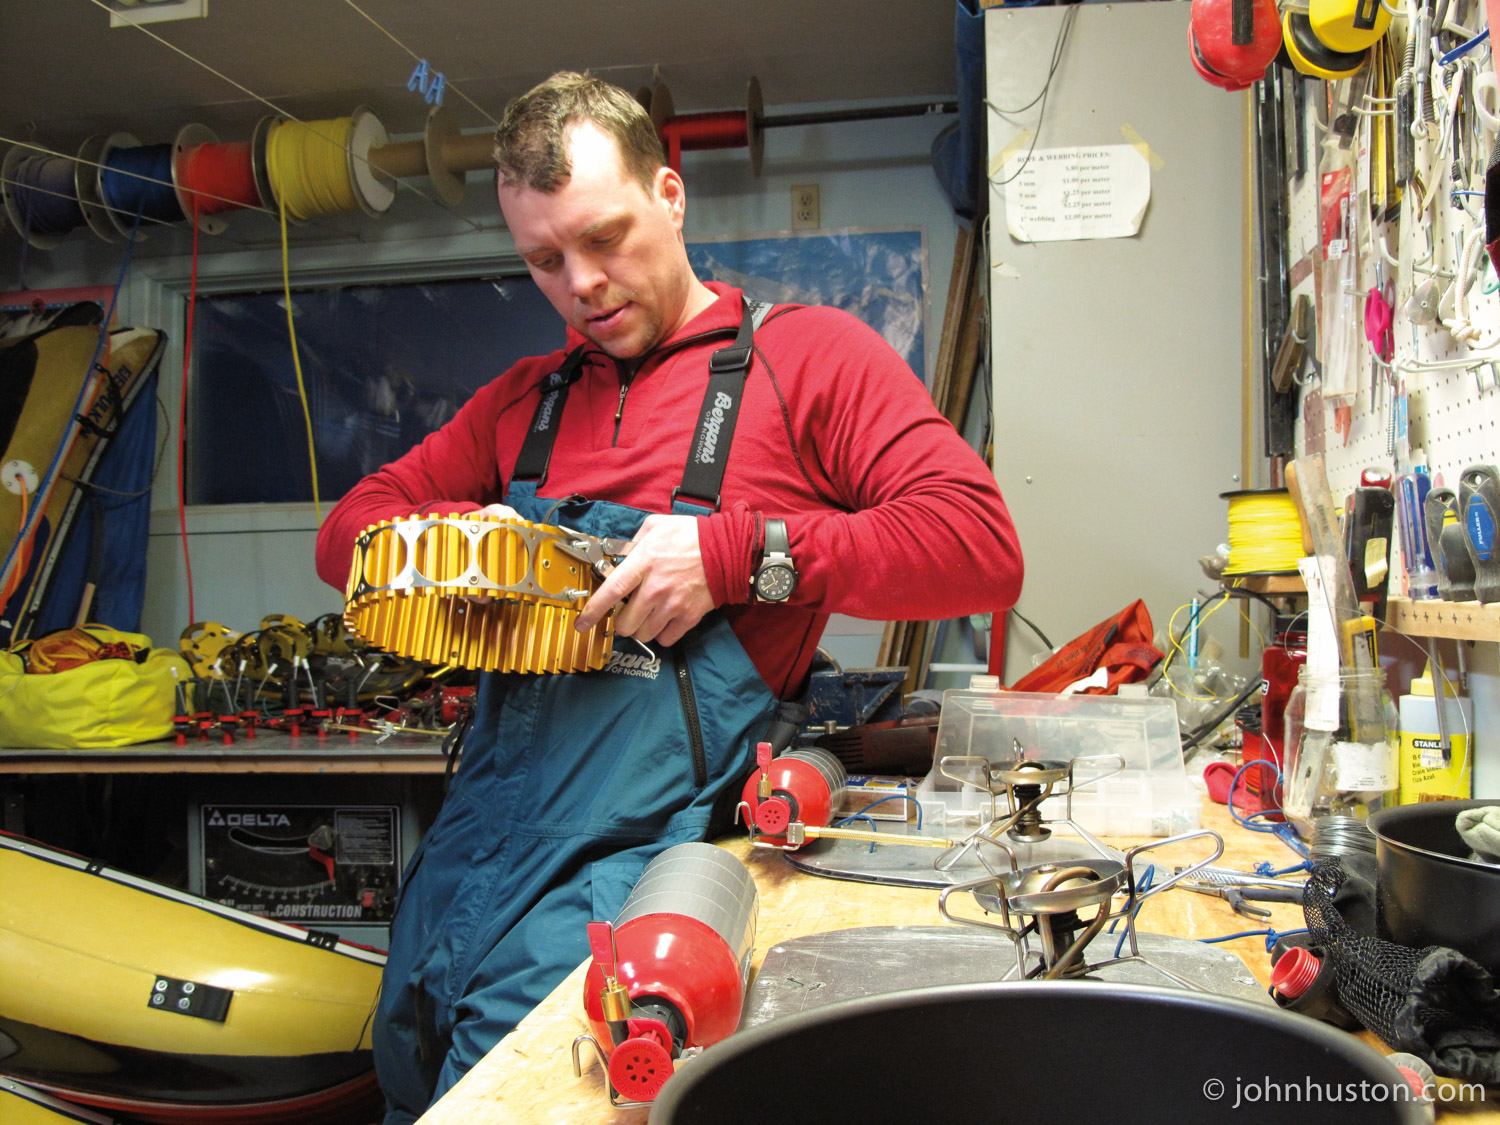 John, in Matty's workshop, putting together a heat exchanger, which increases stove efficiency.